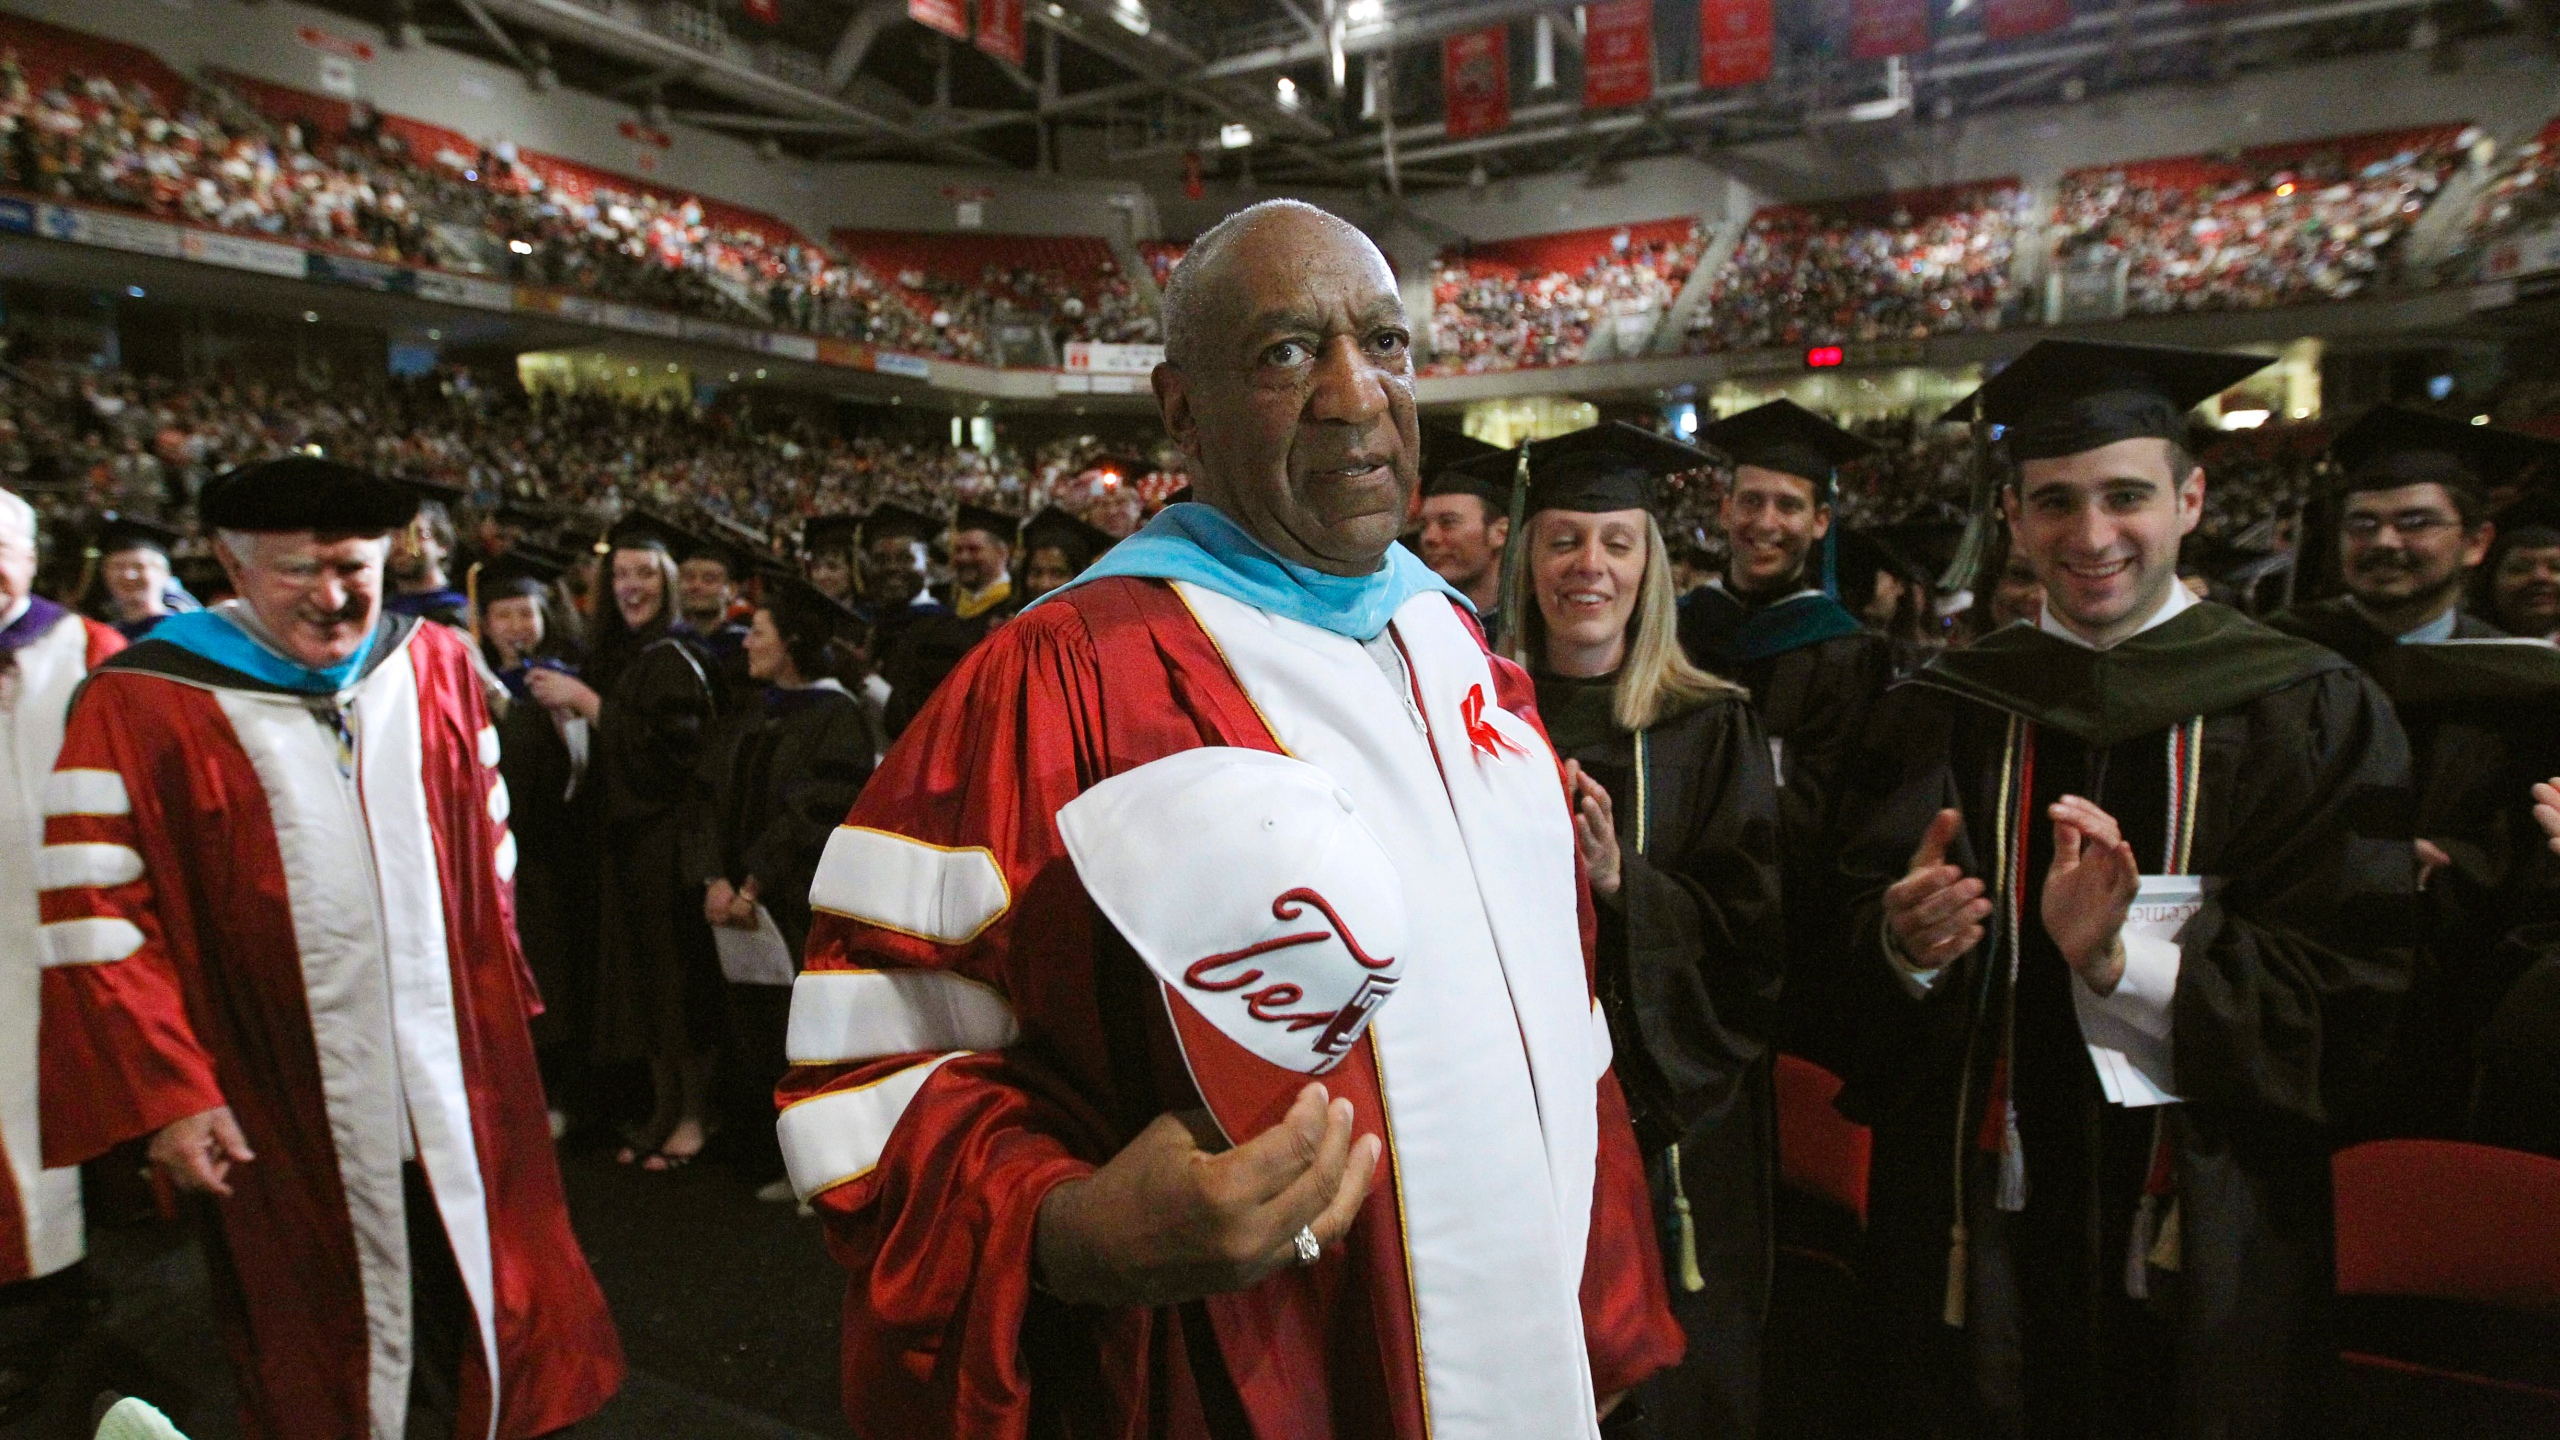 Photo_Gallery_Bill_Cosby_15955-159532.jpg32150117